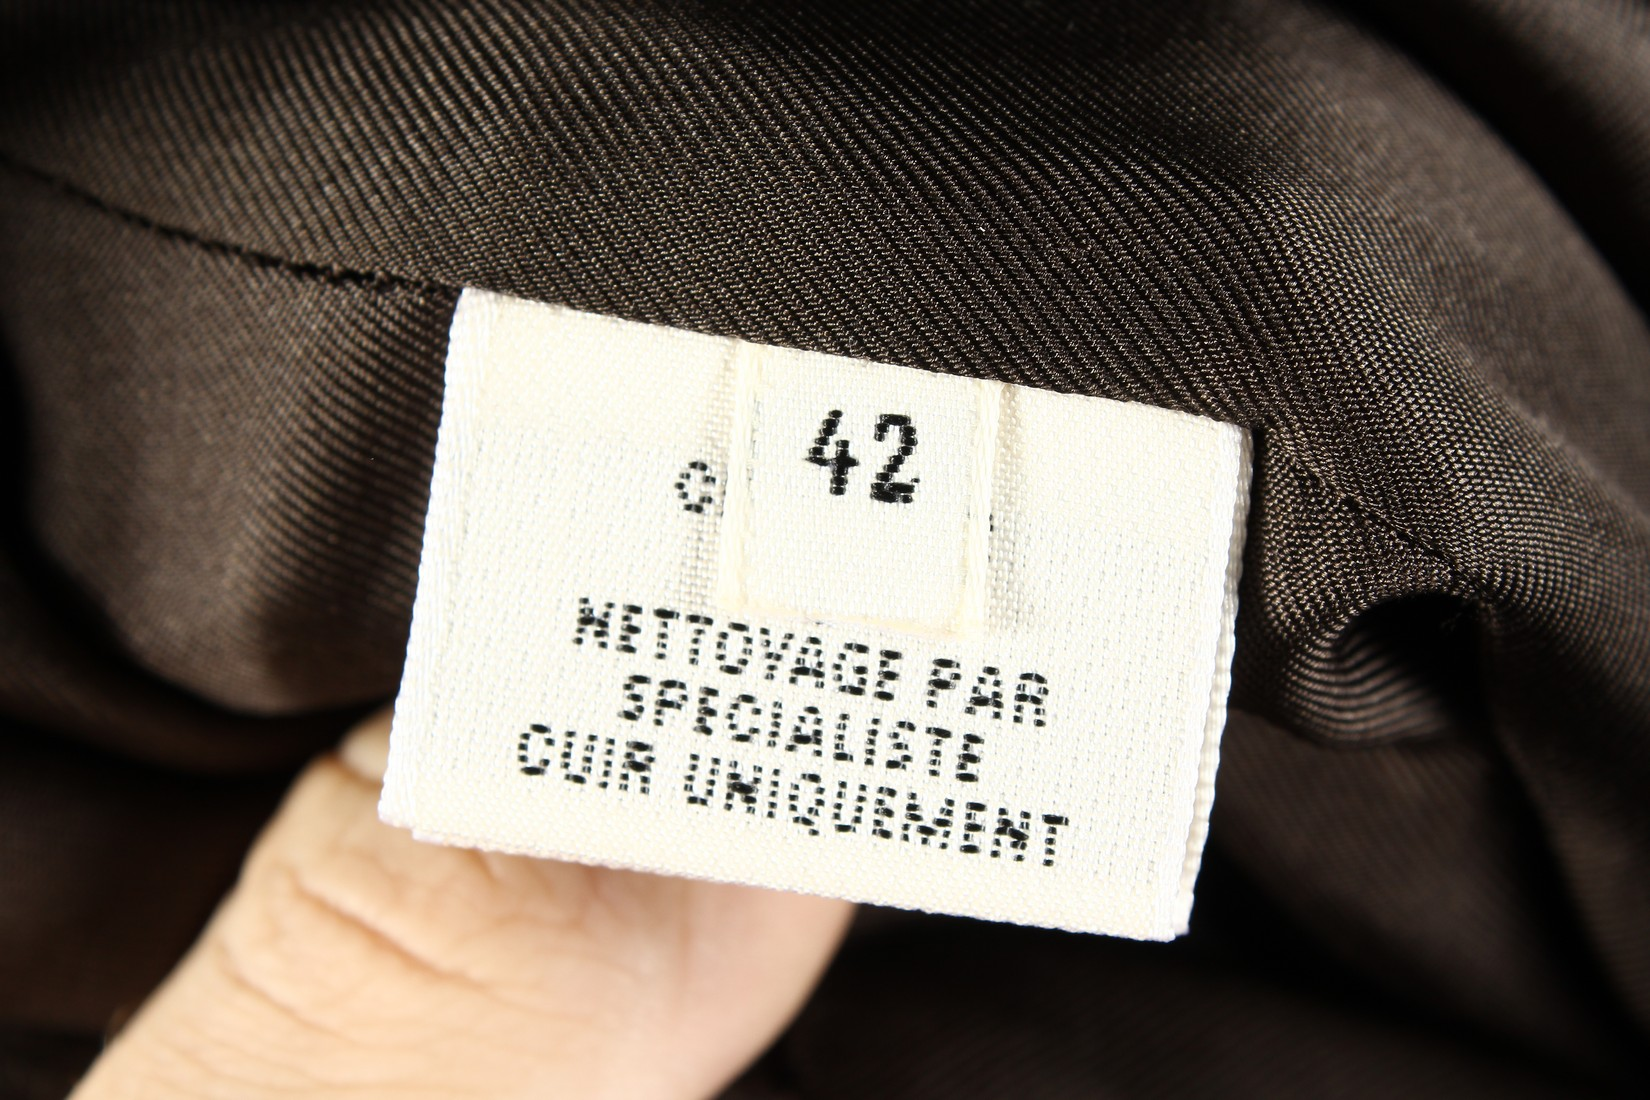 A HERMES LEATHER SKIRT, never worn. - Image 4 of 6